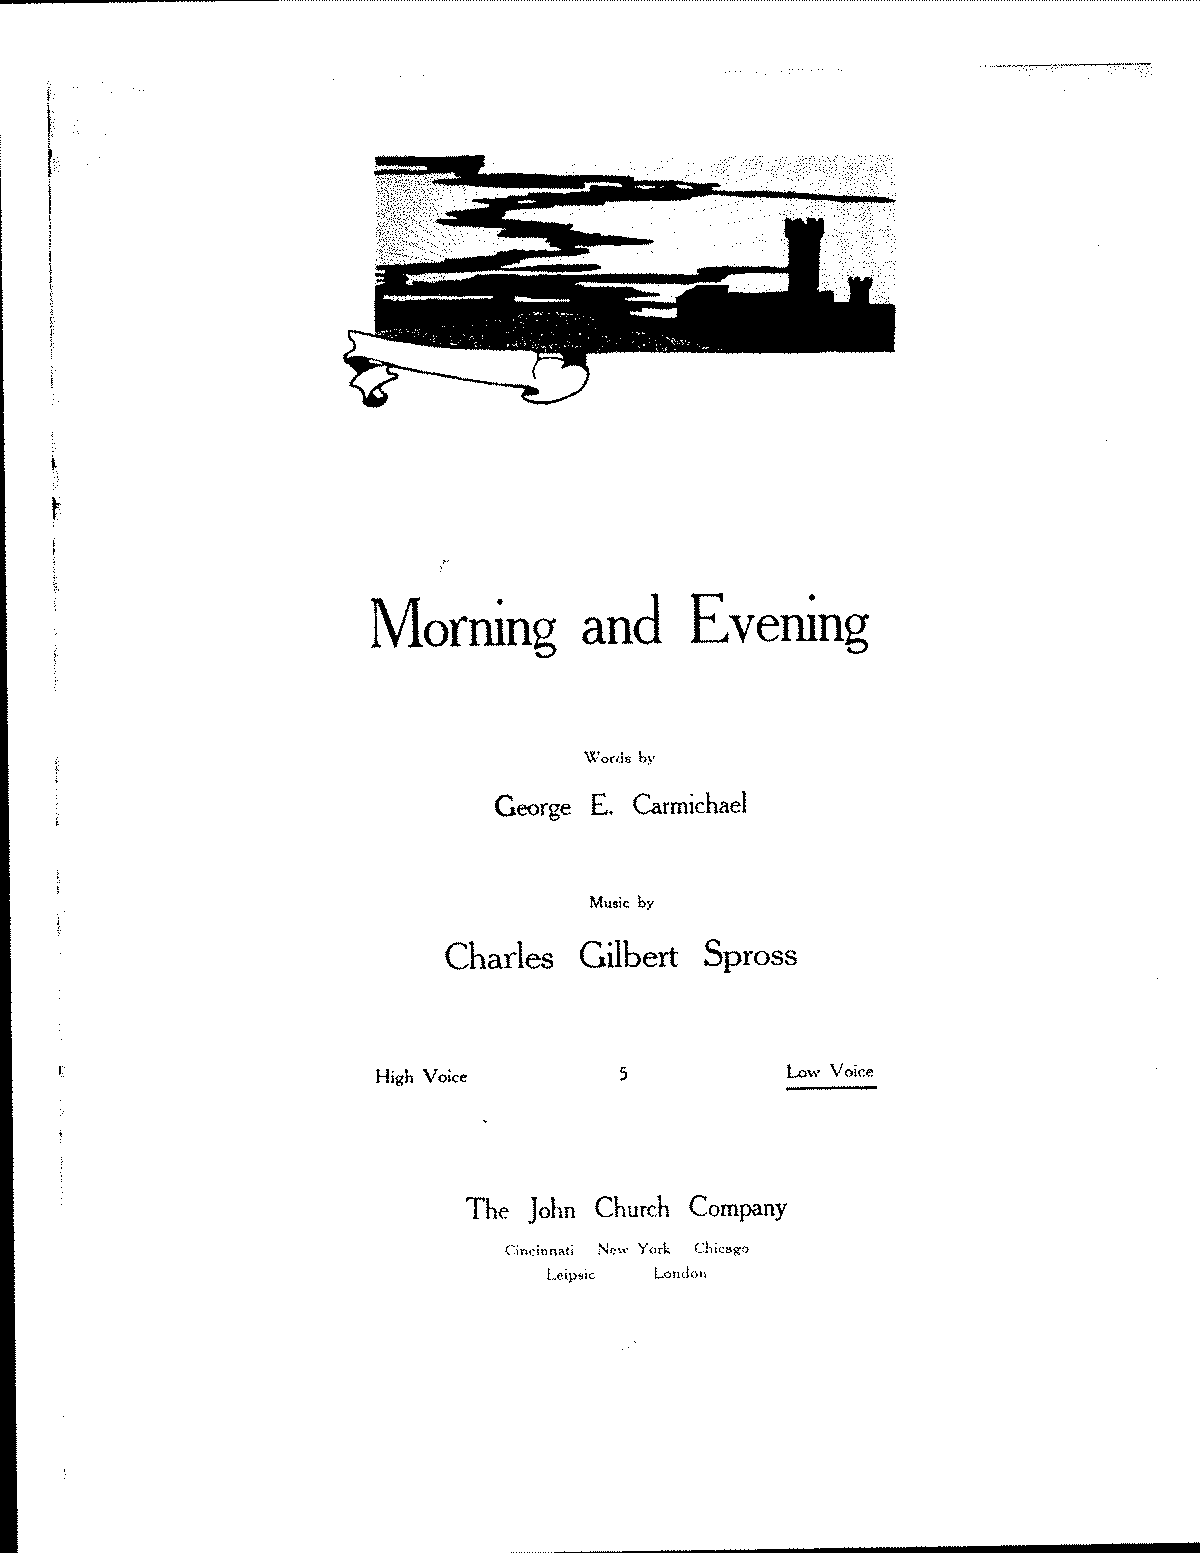 SIBLEY1802.1926.9ef9-Spross Morning and Evening.pdf